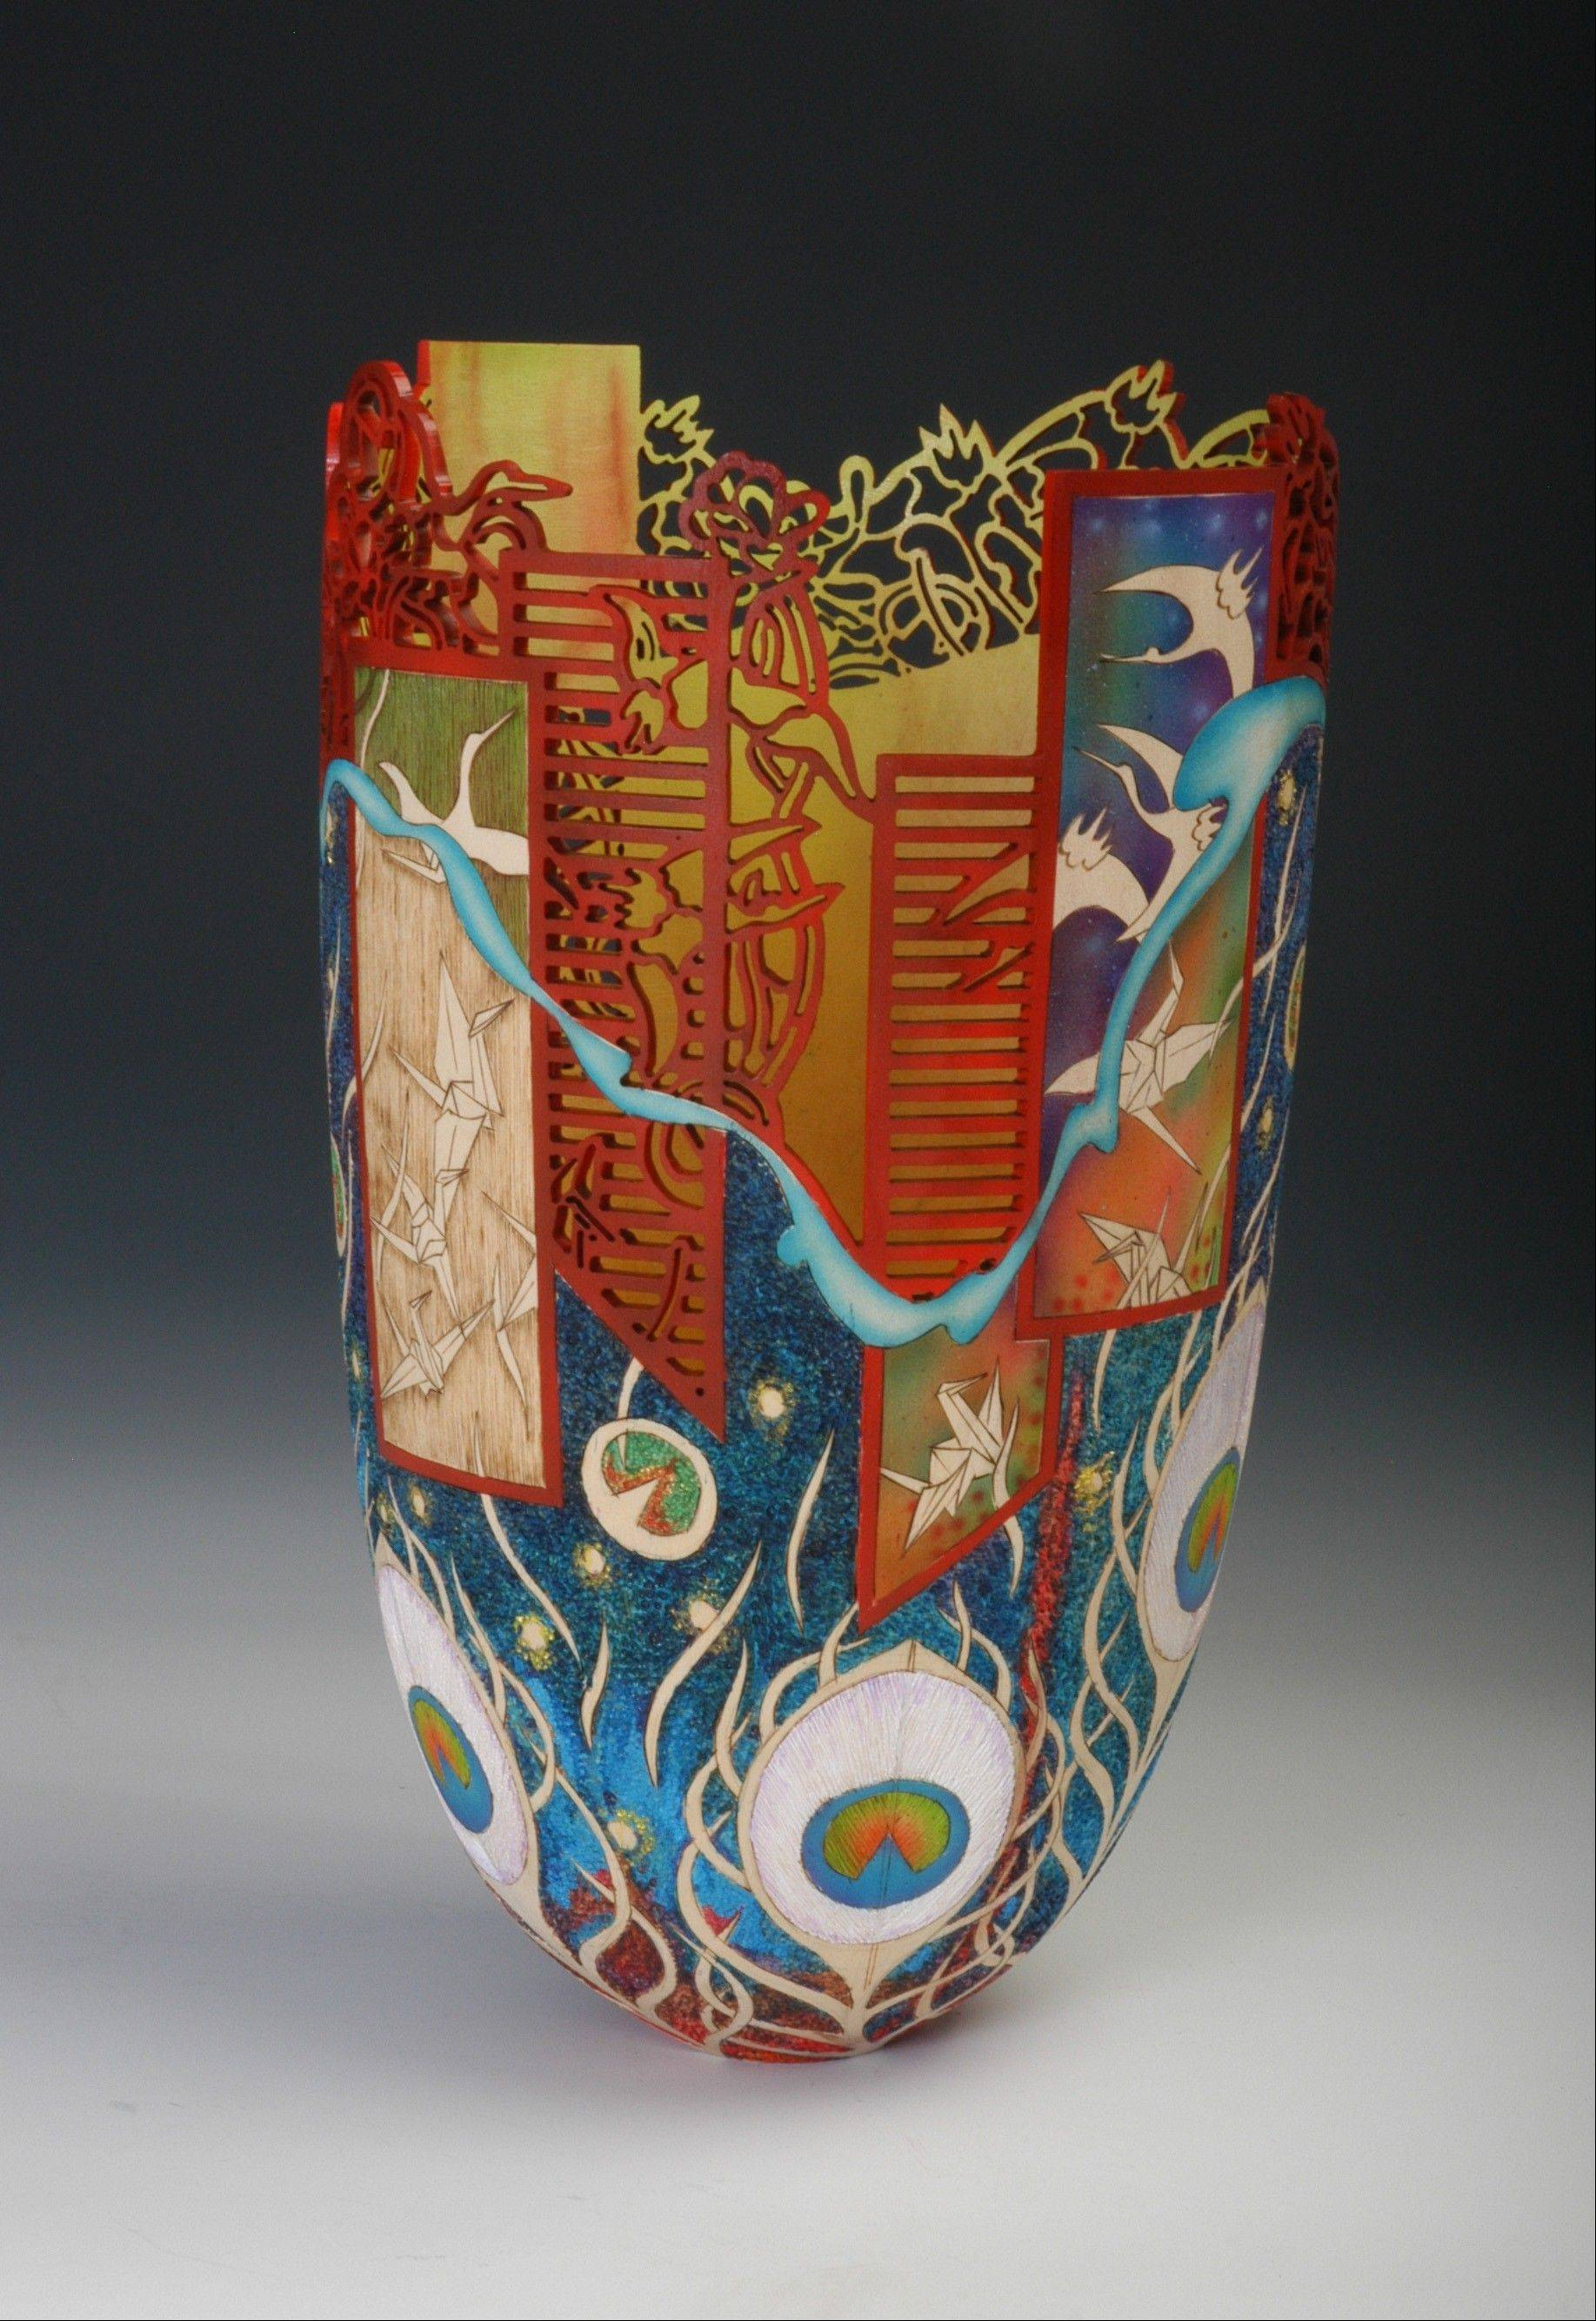 Courtesy of Binh PhoWhile woodturning can be used to make a simple vase, acclaimed artist Binh Pho of Maple Park turns wood into works of art such as this.